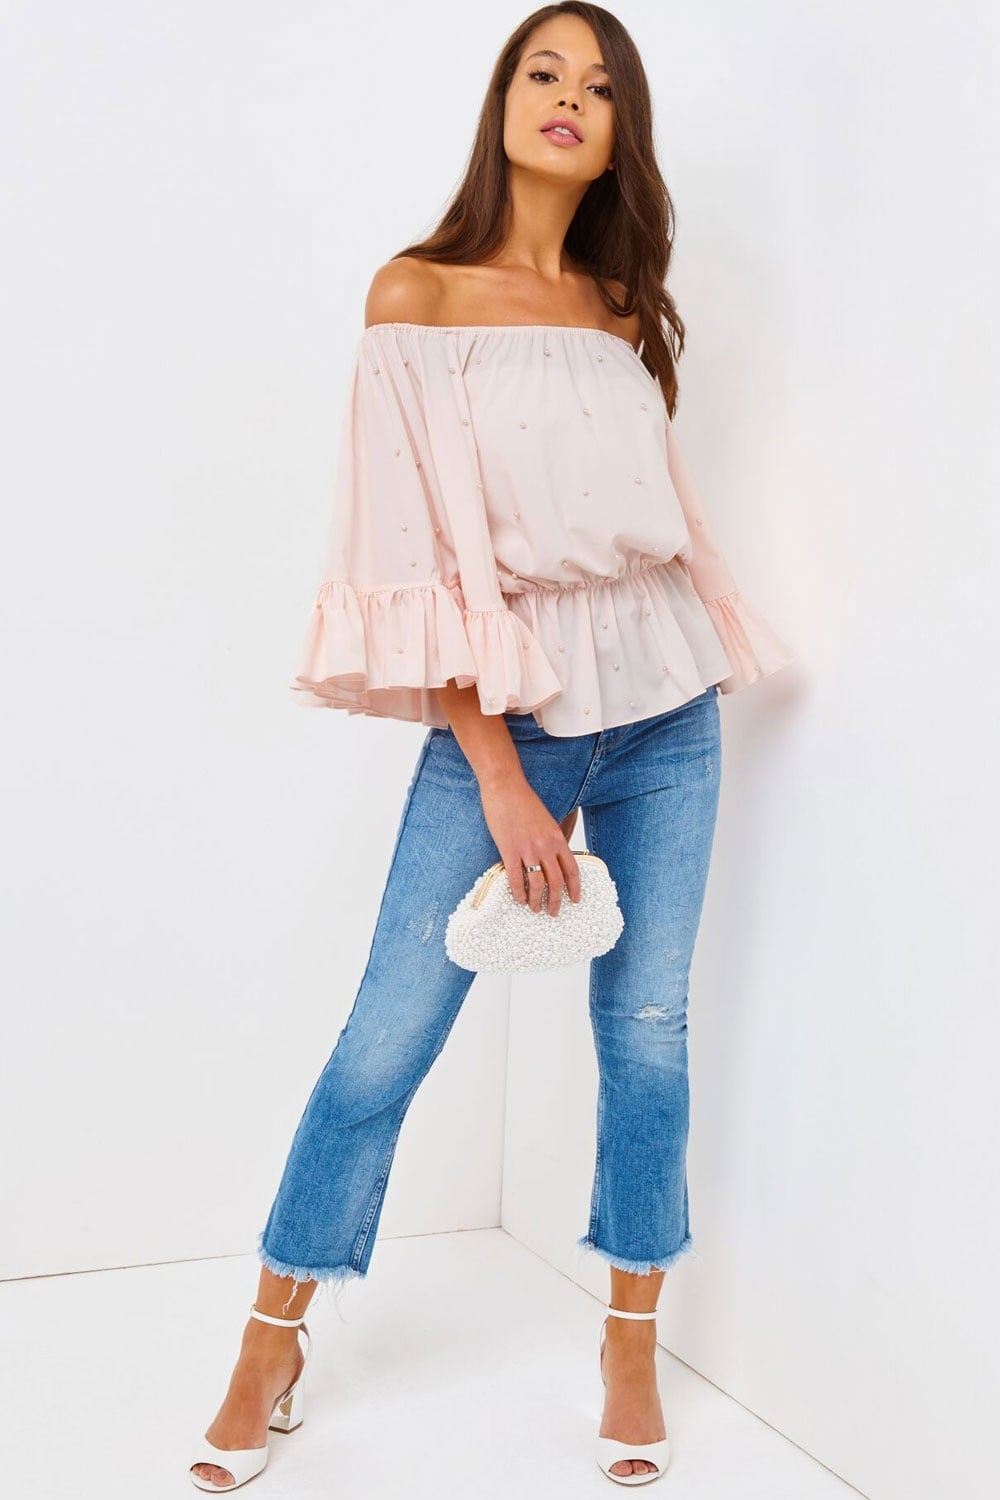 f0f0d5c24aa Outlet Girls On Film Pink Bardot Top - Outlet Girls On Film from Little  Mistress UK